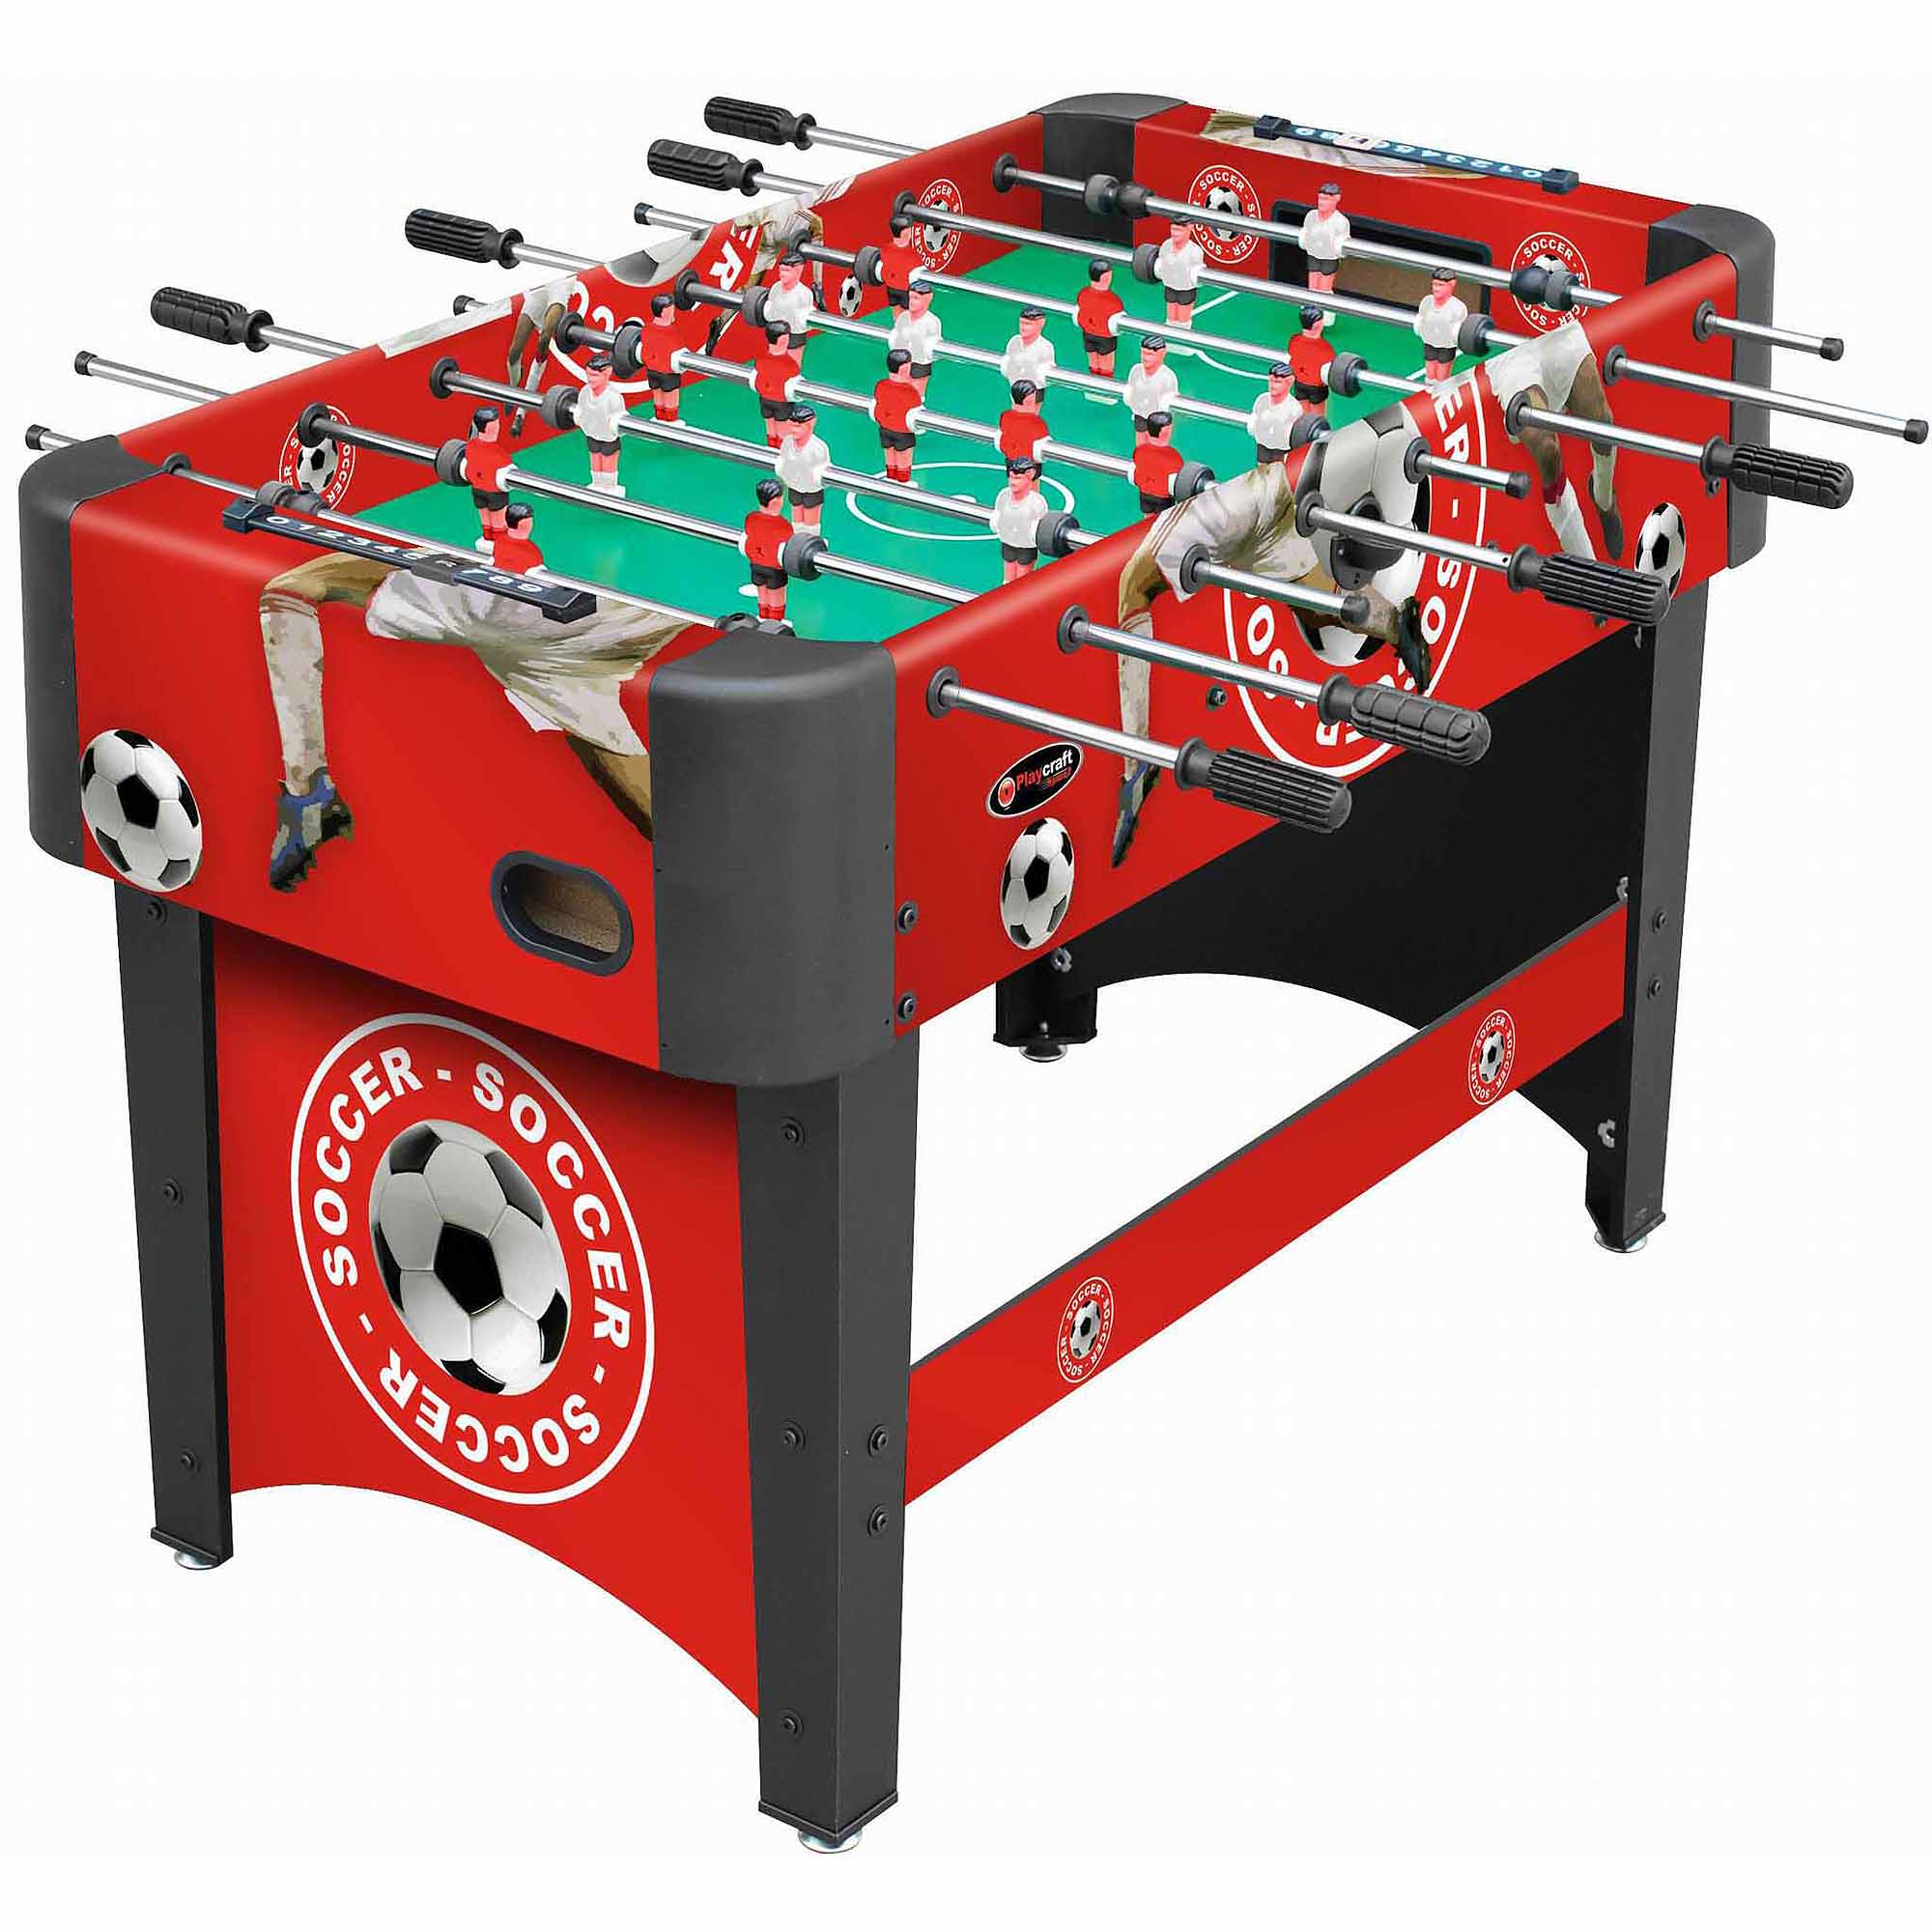 "Playcraft Sport 48"" Foosball Table, Red by Generic"